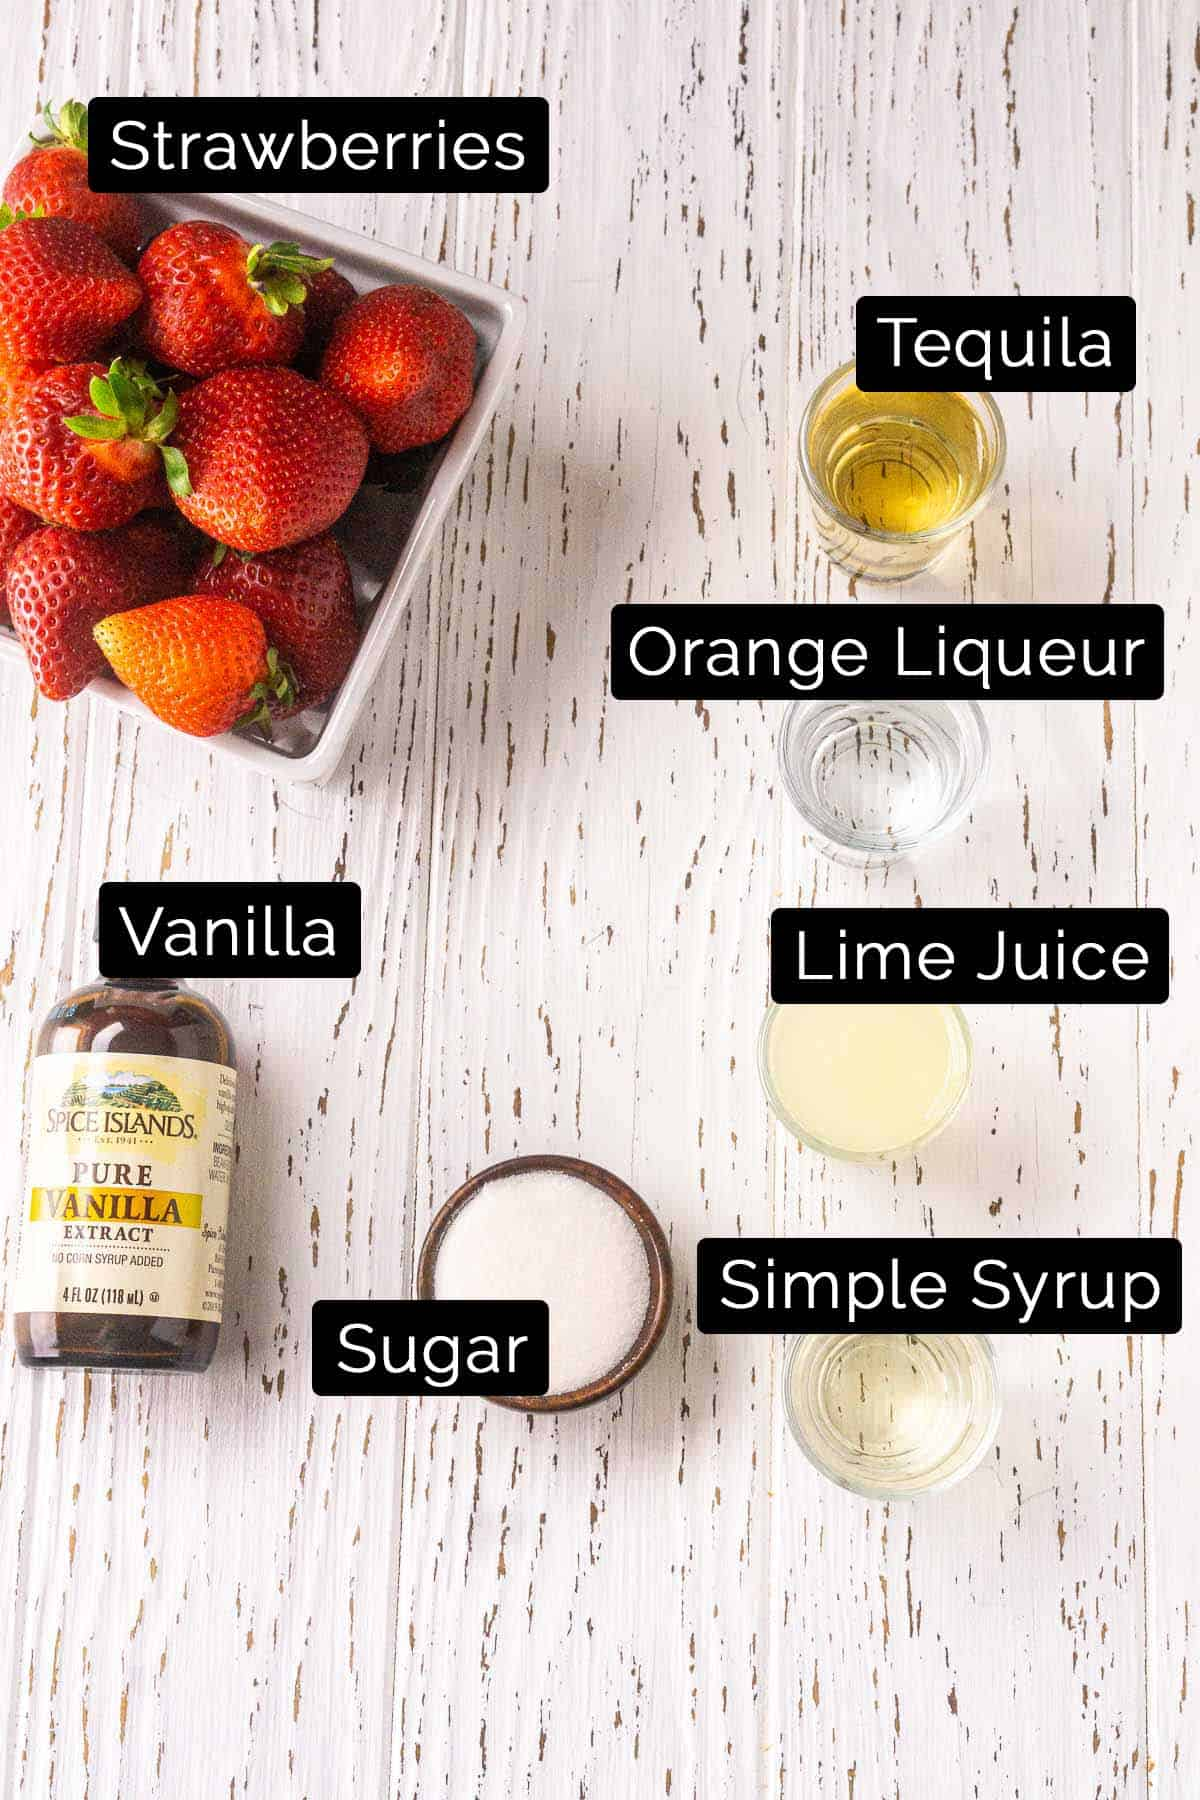 The ingredients with black and white labels on a white wooden board.